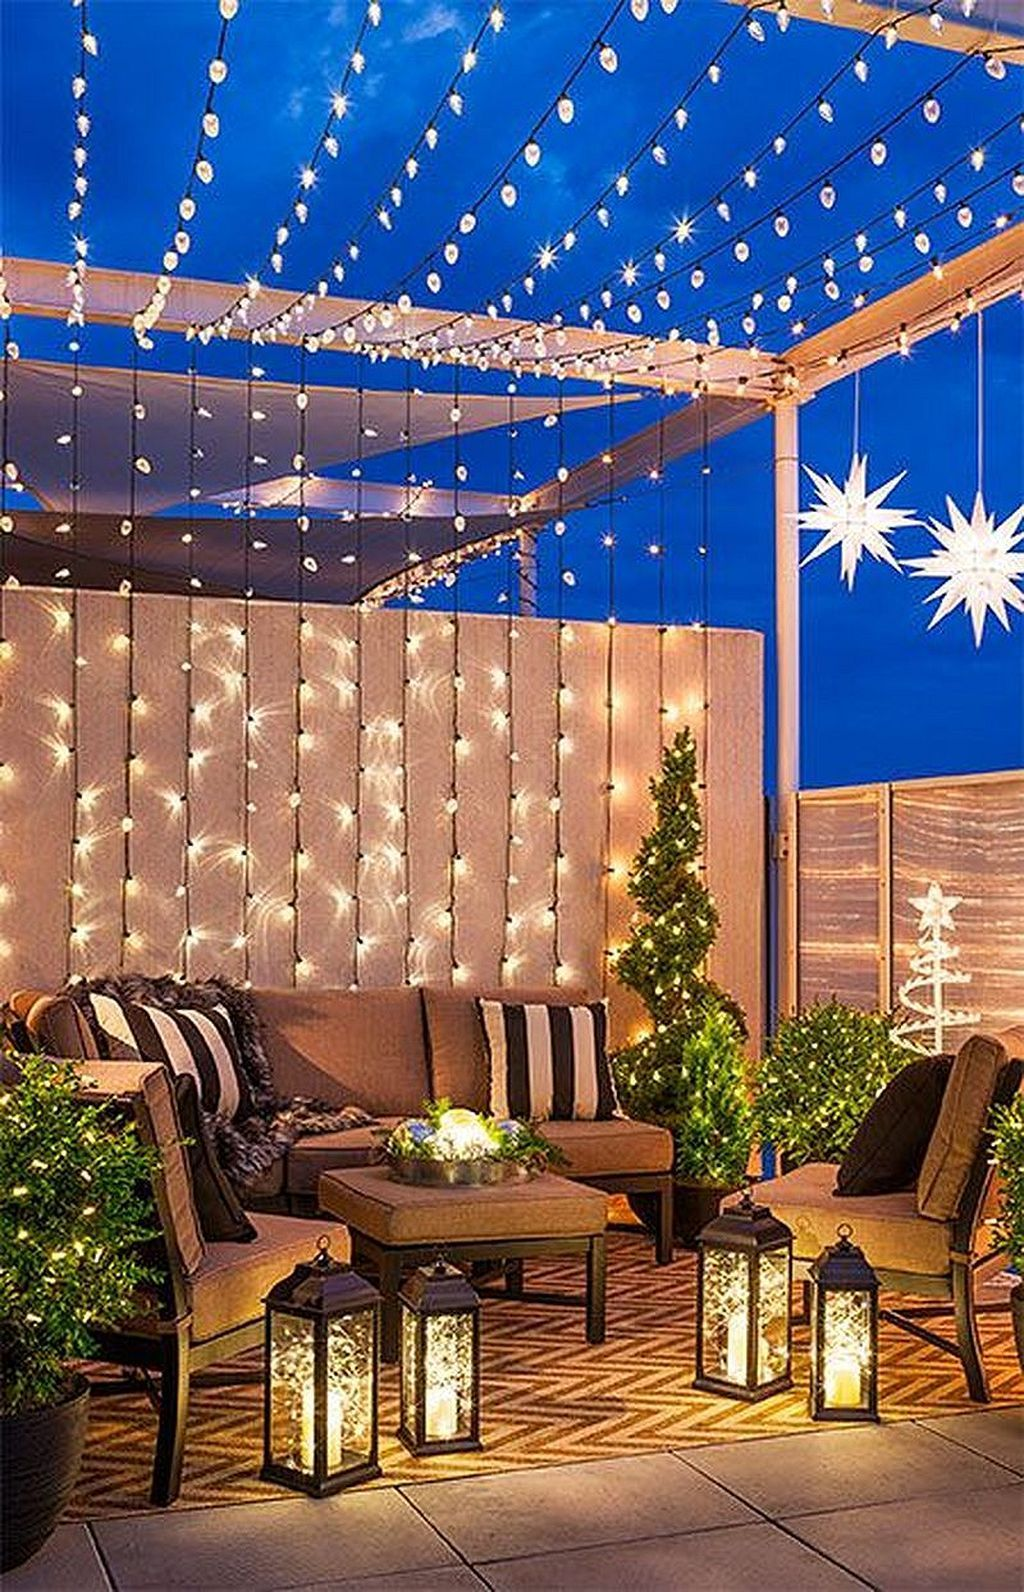 Gorgeous 20 Deck Decorating Ideas Pergola Lights And Cement Planters Https Homegardenmagz C Apartment Patio Decor Small Outdoor Spaces Outdoor Space Design